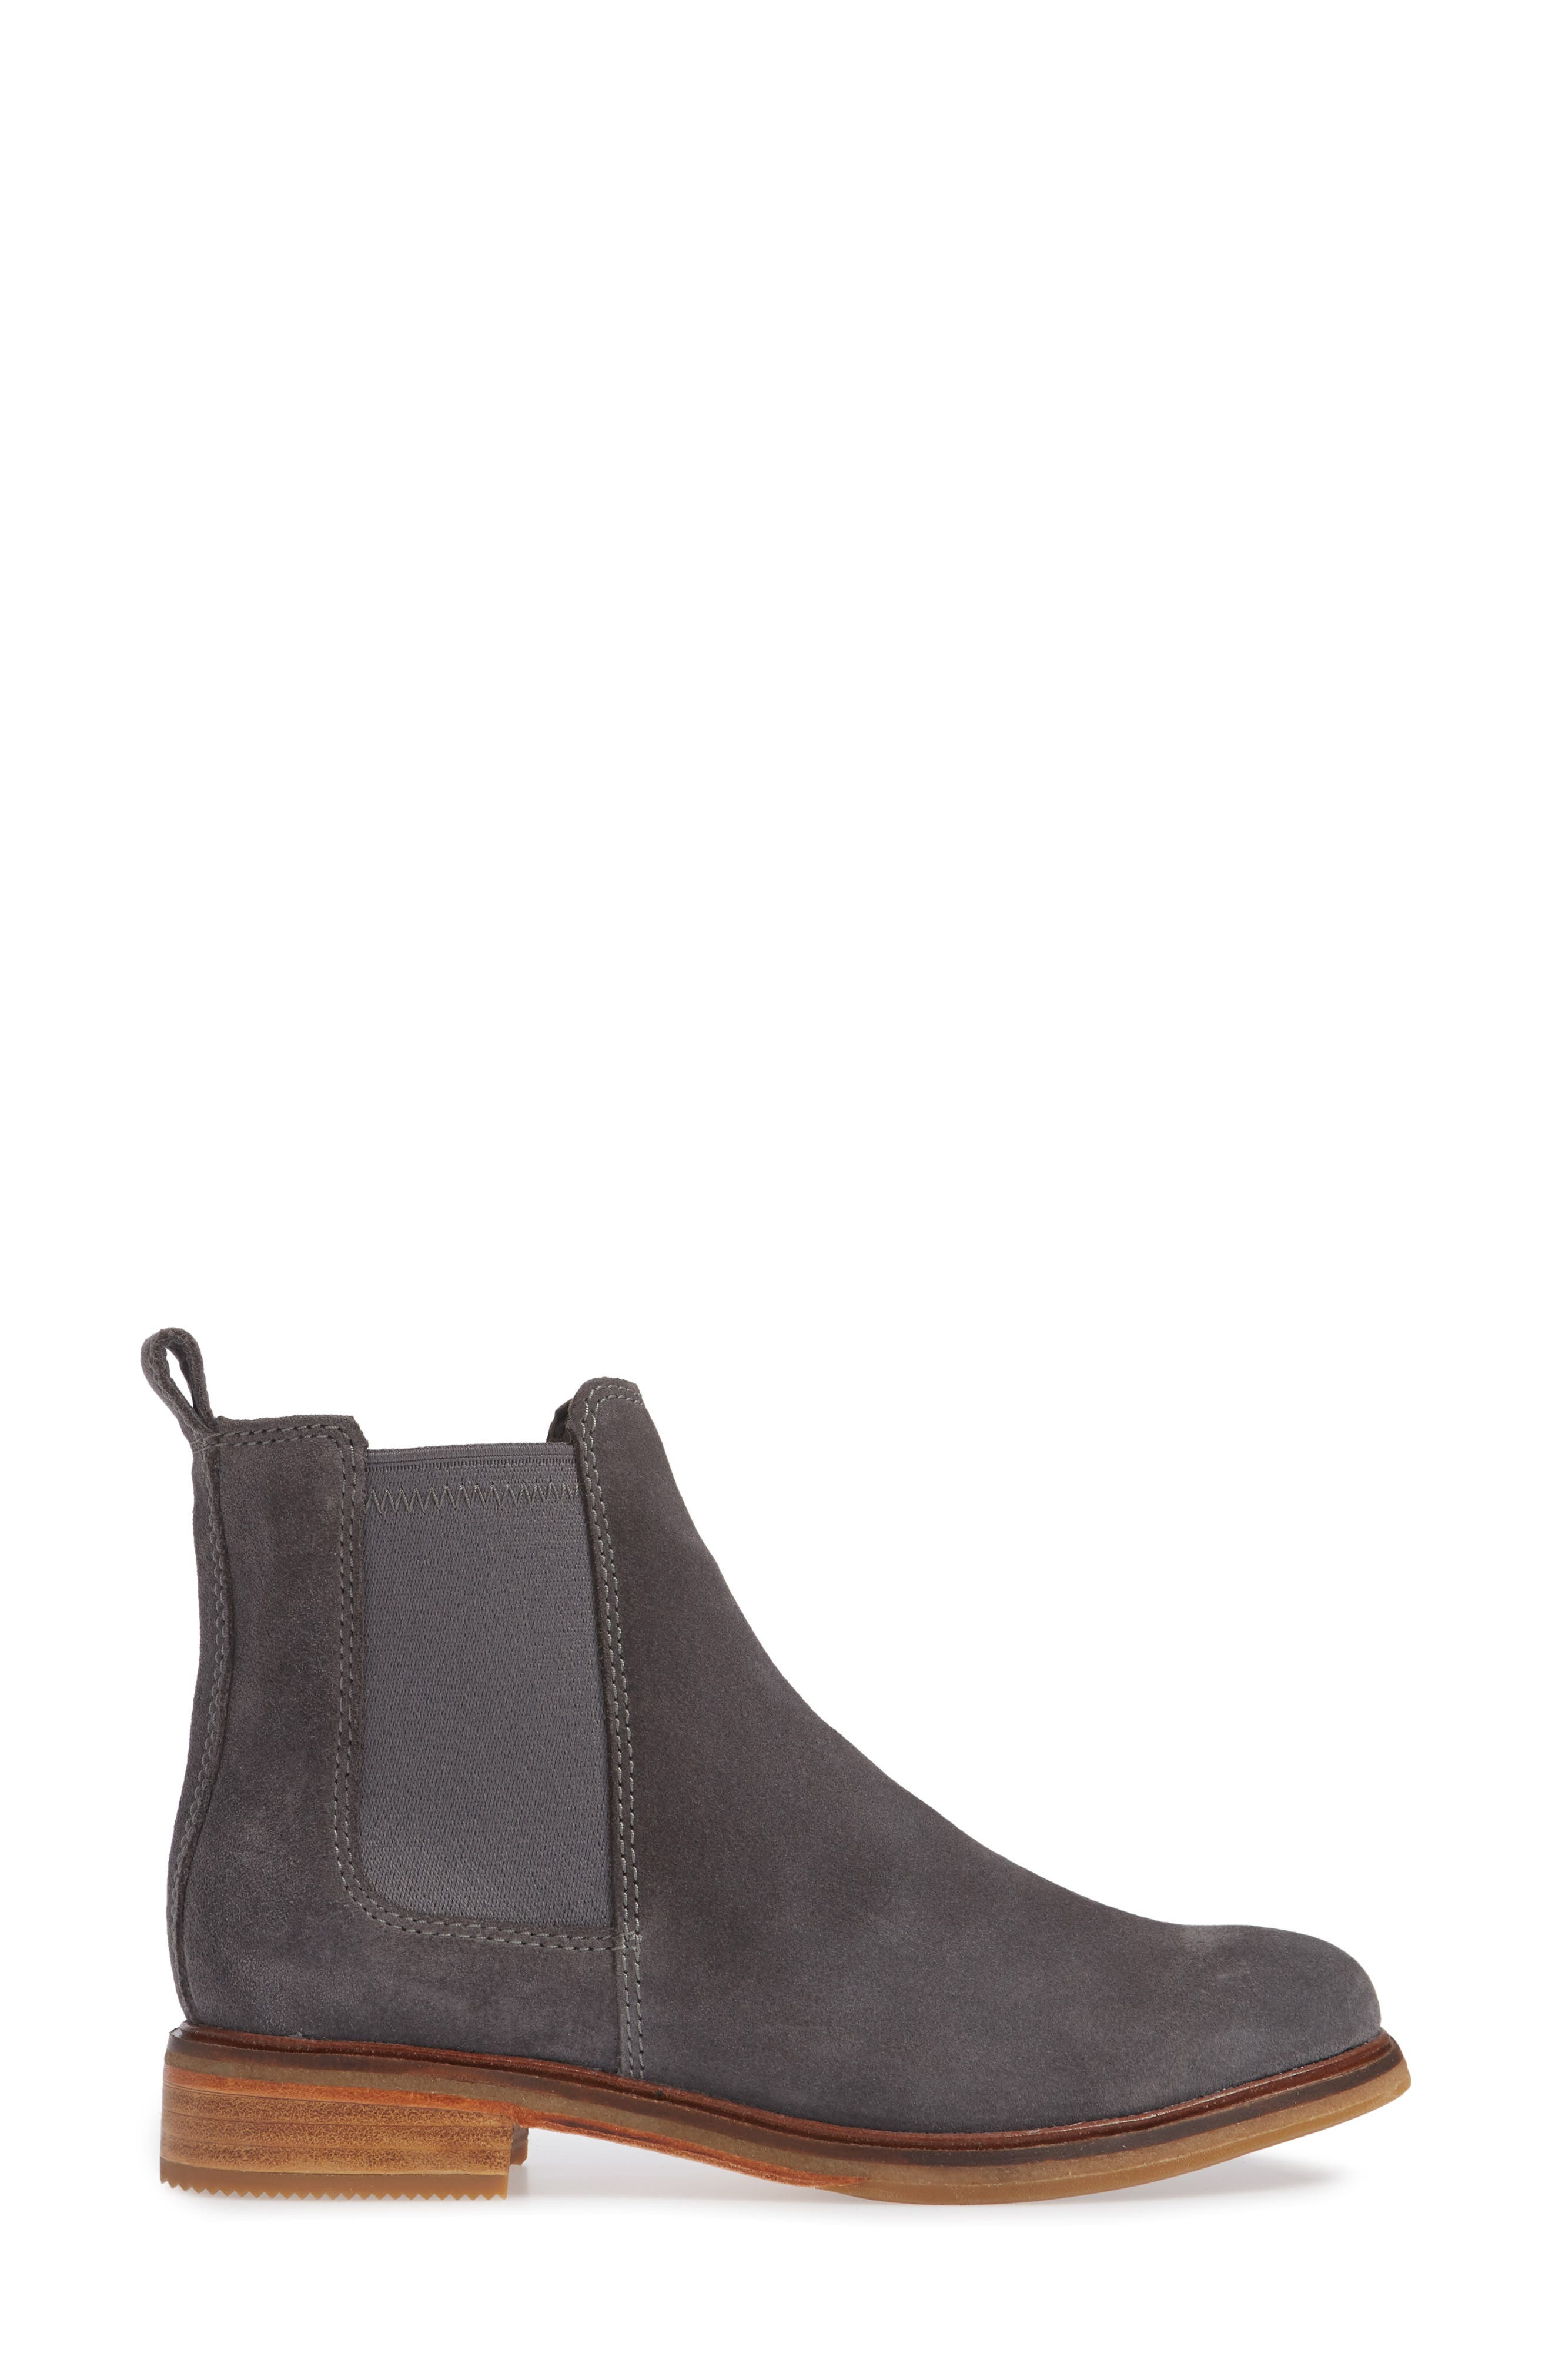 Clarkdale Arlo Boot,                             Alternate thumbnail 3, color,                             GREY SUEDE